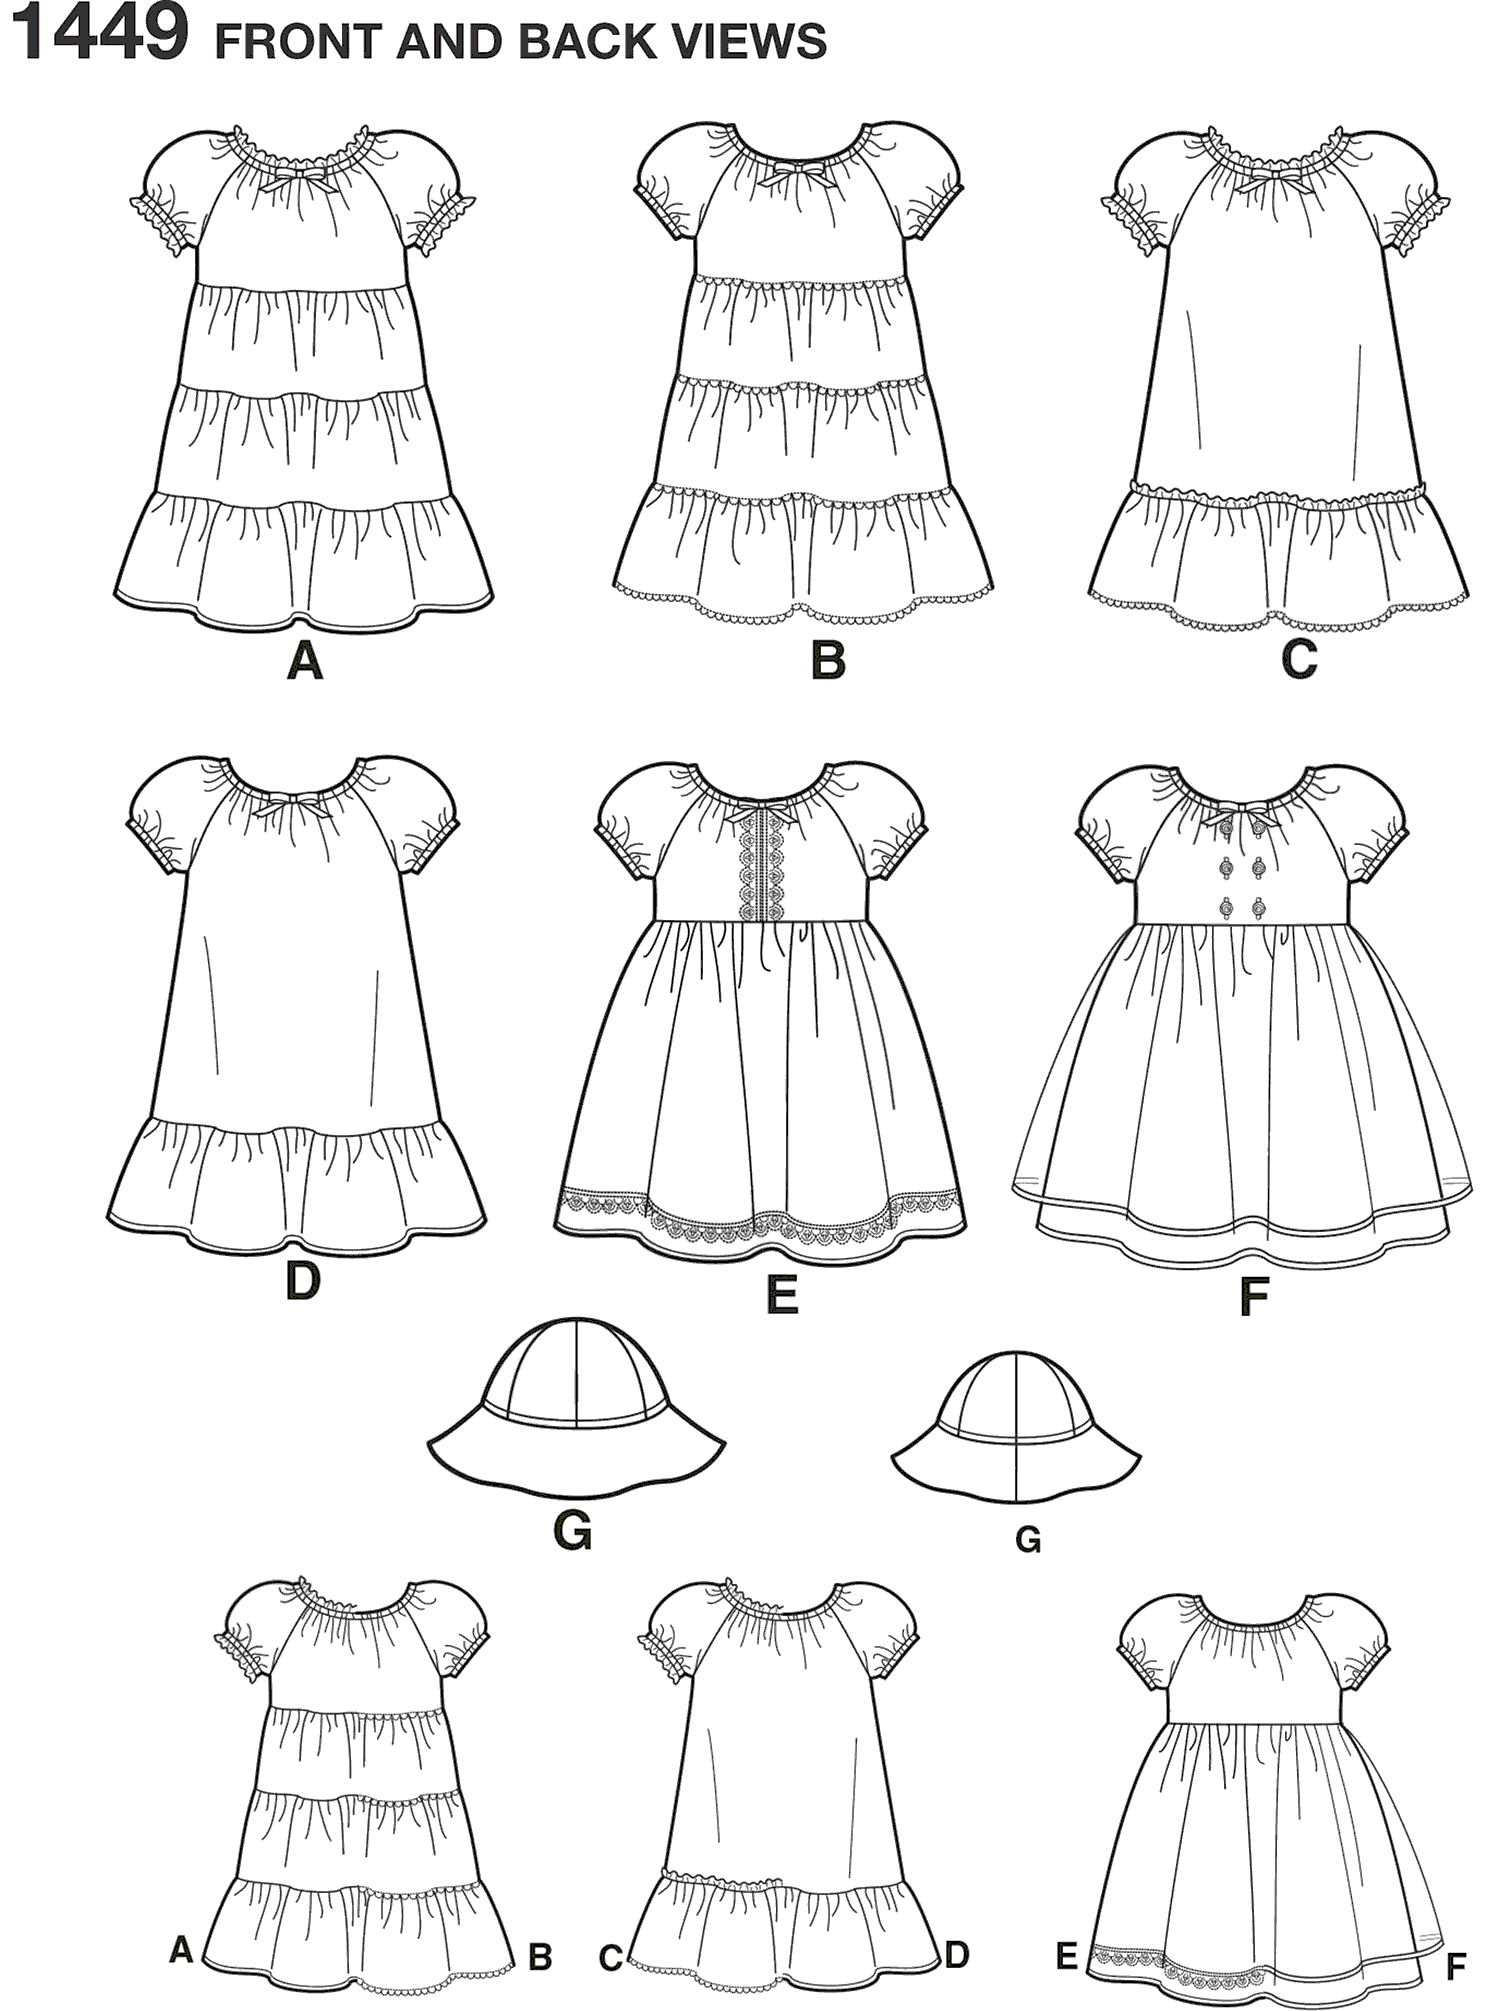 Simplicity Pattern 1449 Toddlers Dress and Hat in Three Sizes Line Art From Patternsandplains.com